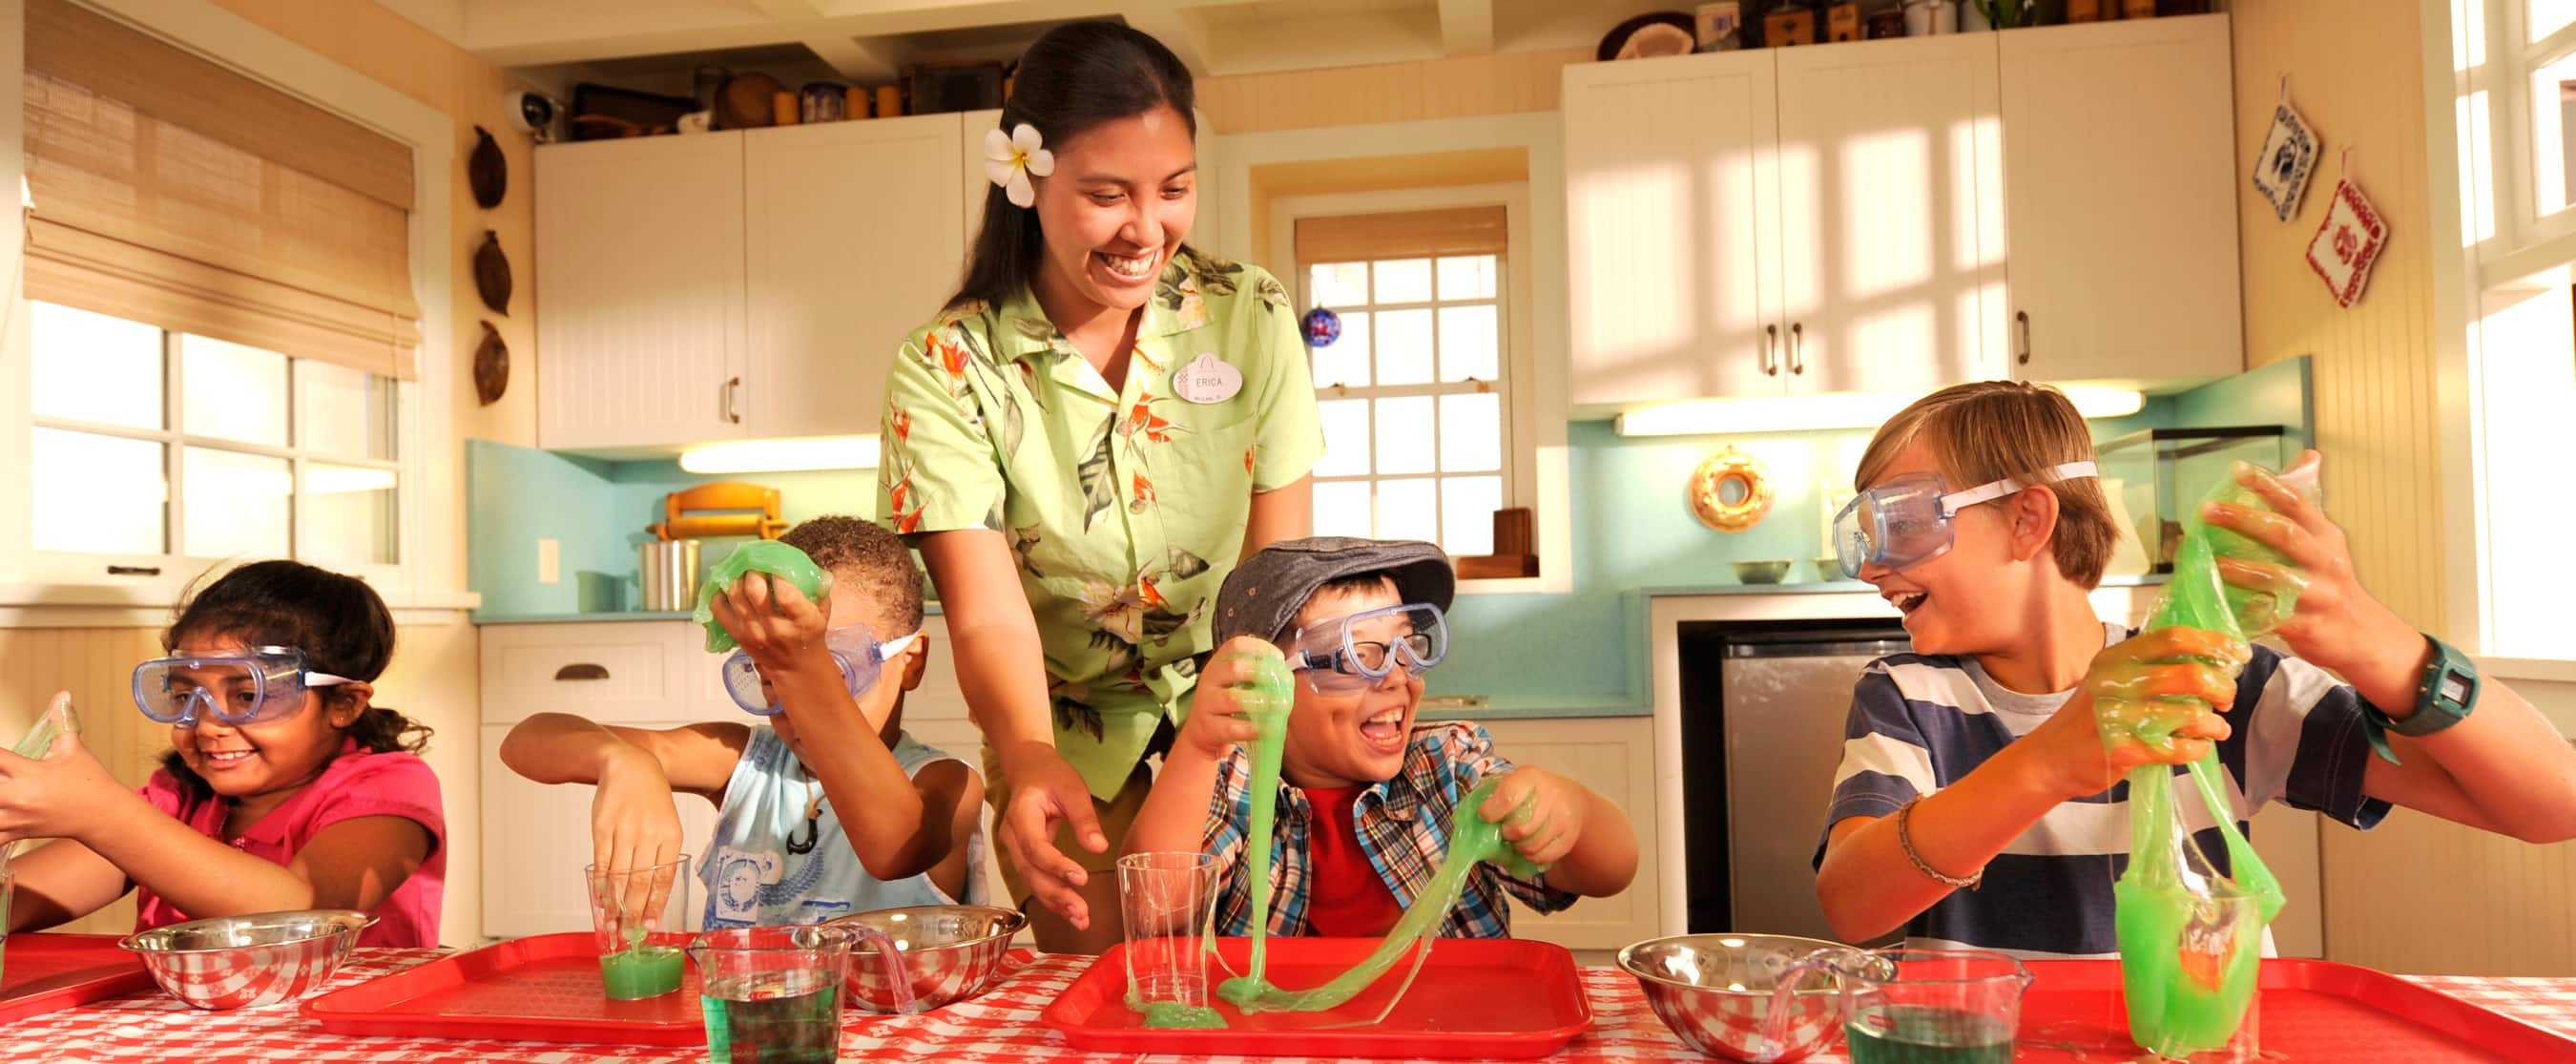 A Cast Member supervises 4 children wearing goggles and playing with green slimeA Cast Member supervises 4 children wearing goggles and playing with green slime